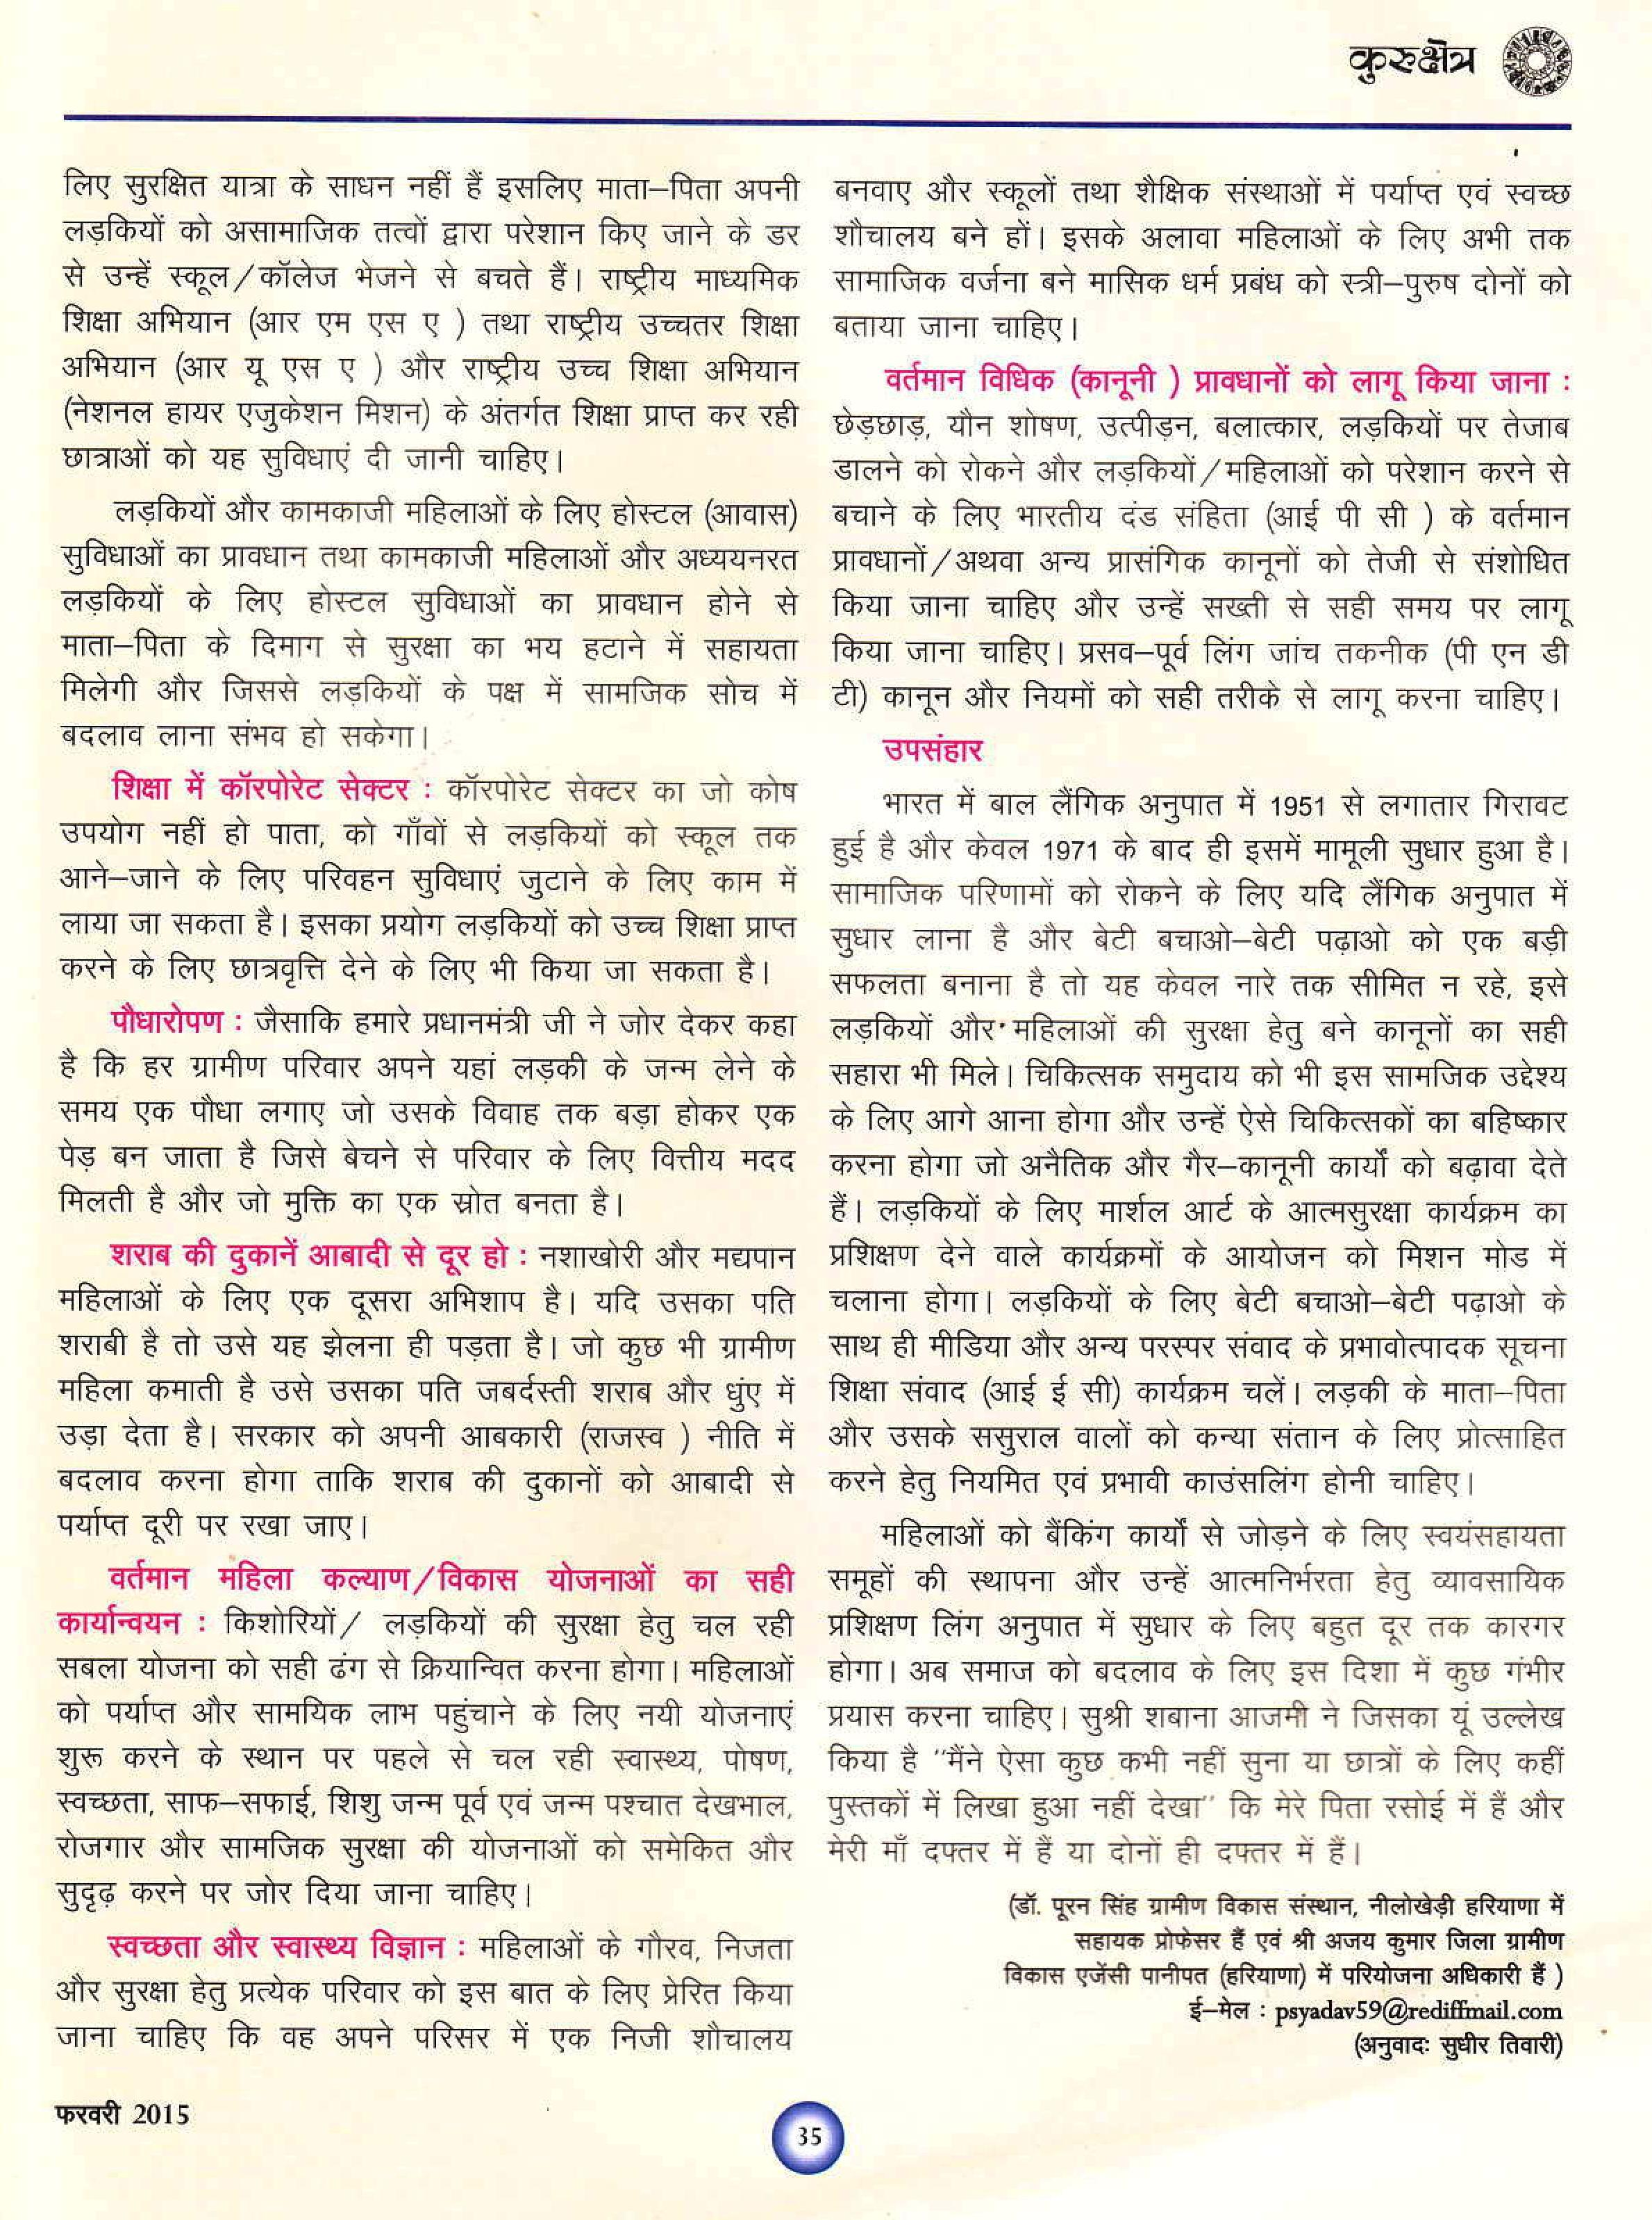 IMG_0001-page-004